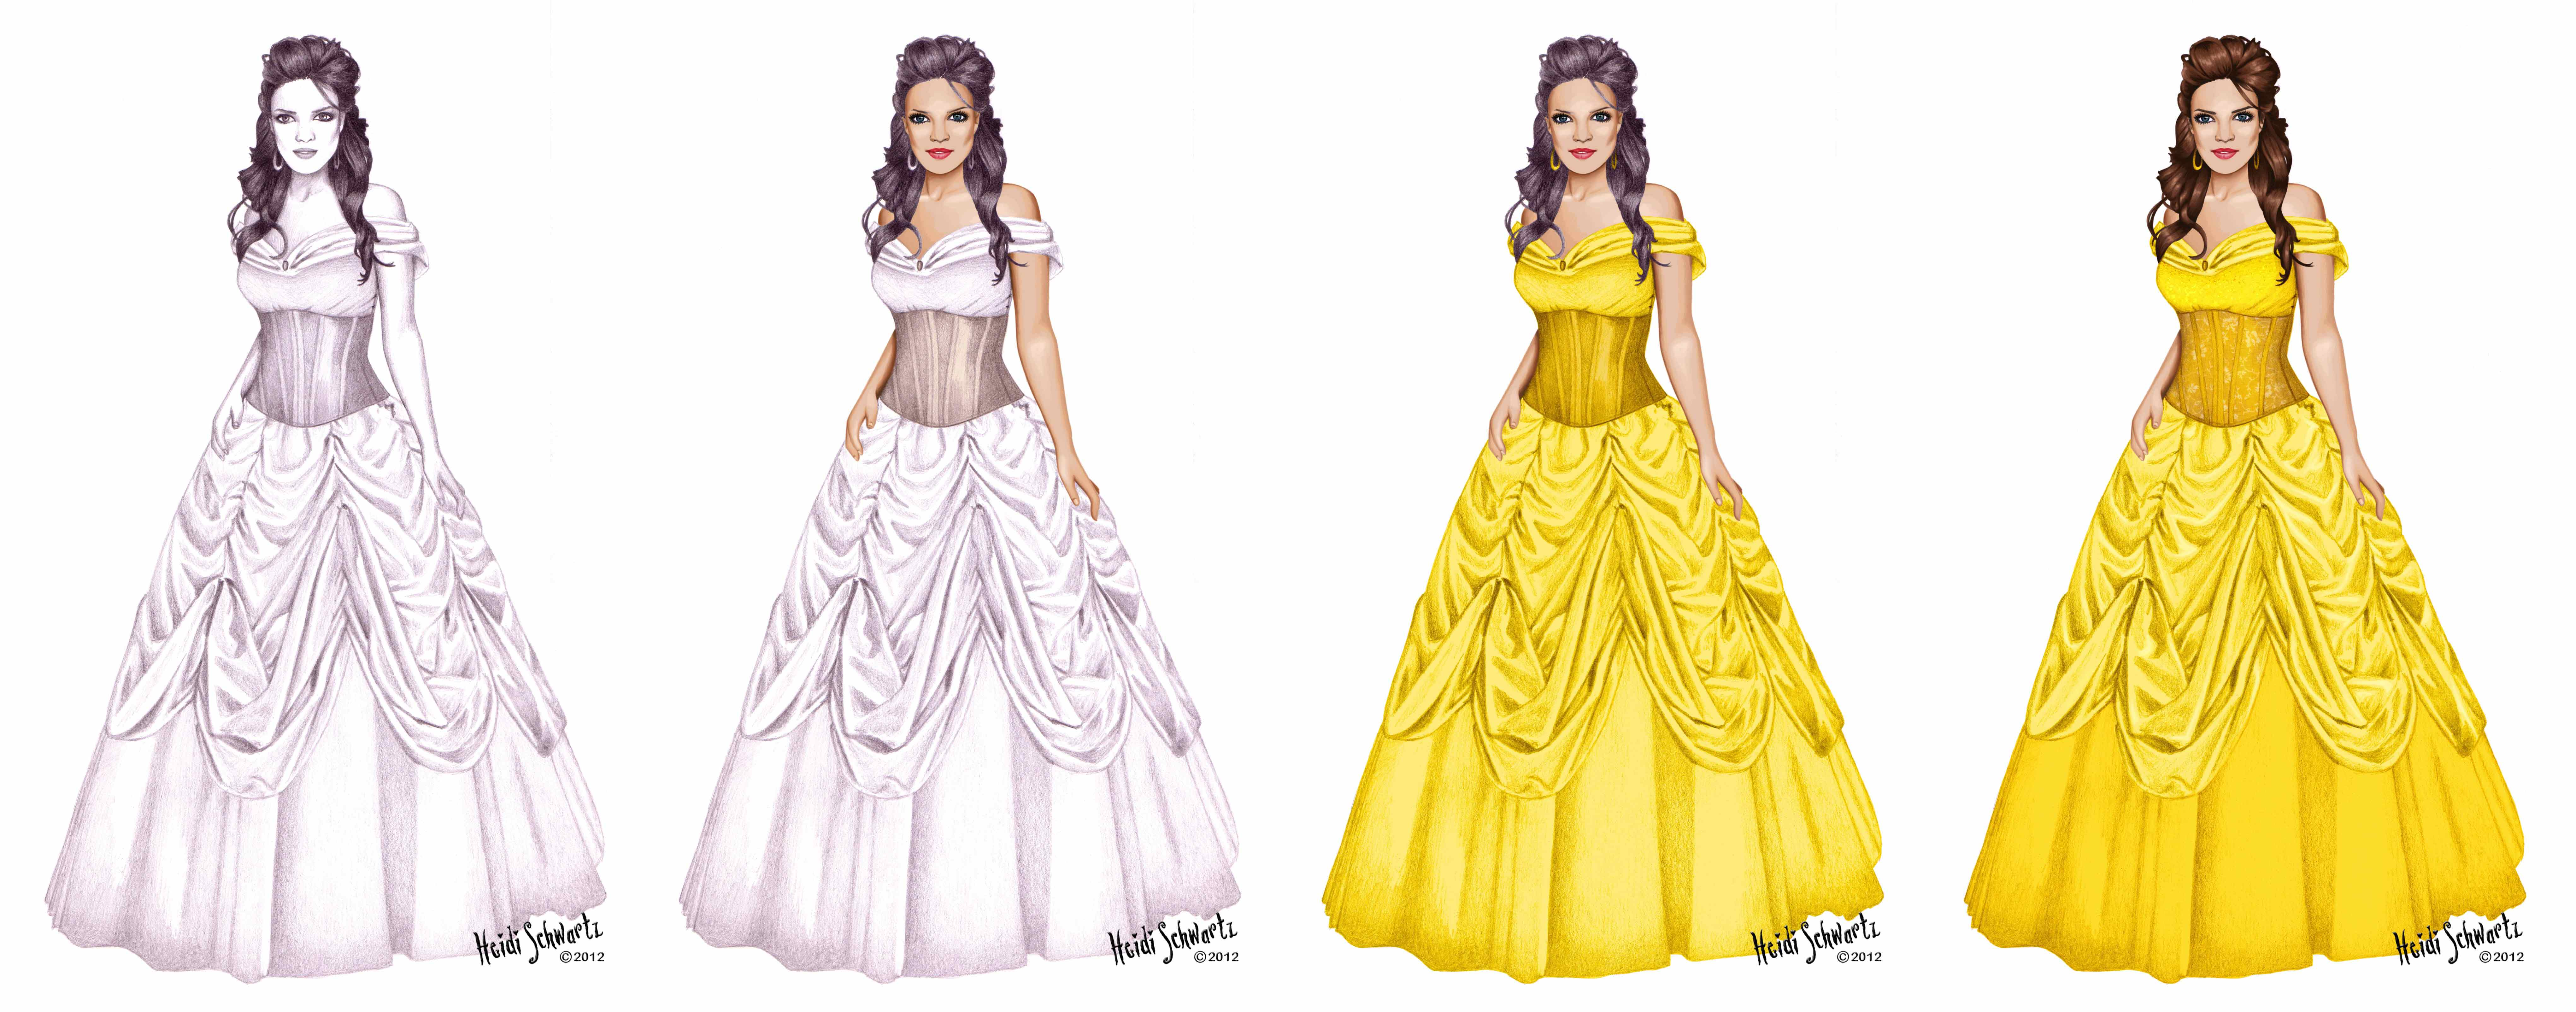 the character development of belle in the story beauty and the beast Interpretations of the character belle from beauty and the beast - by heidi schwartz.